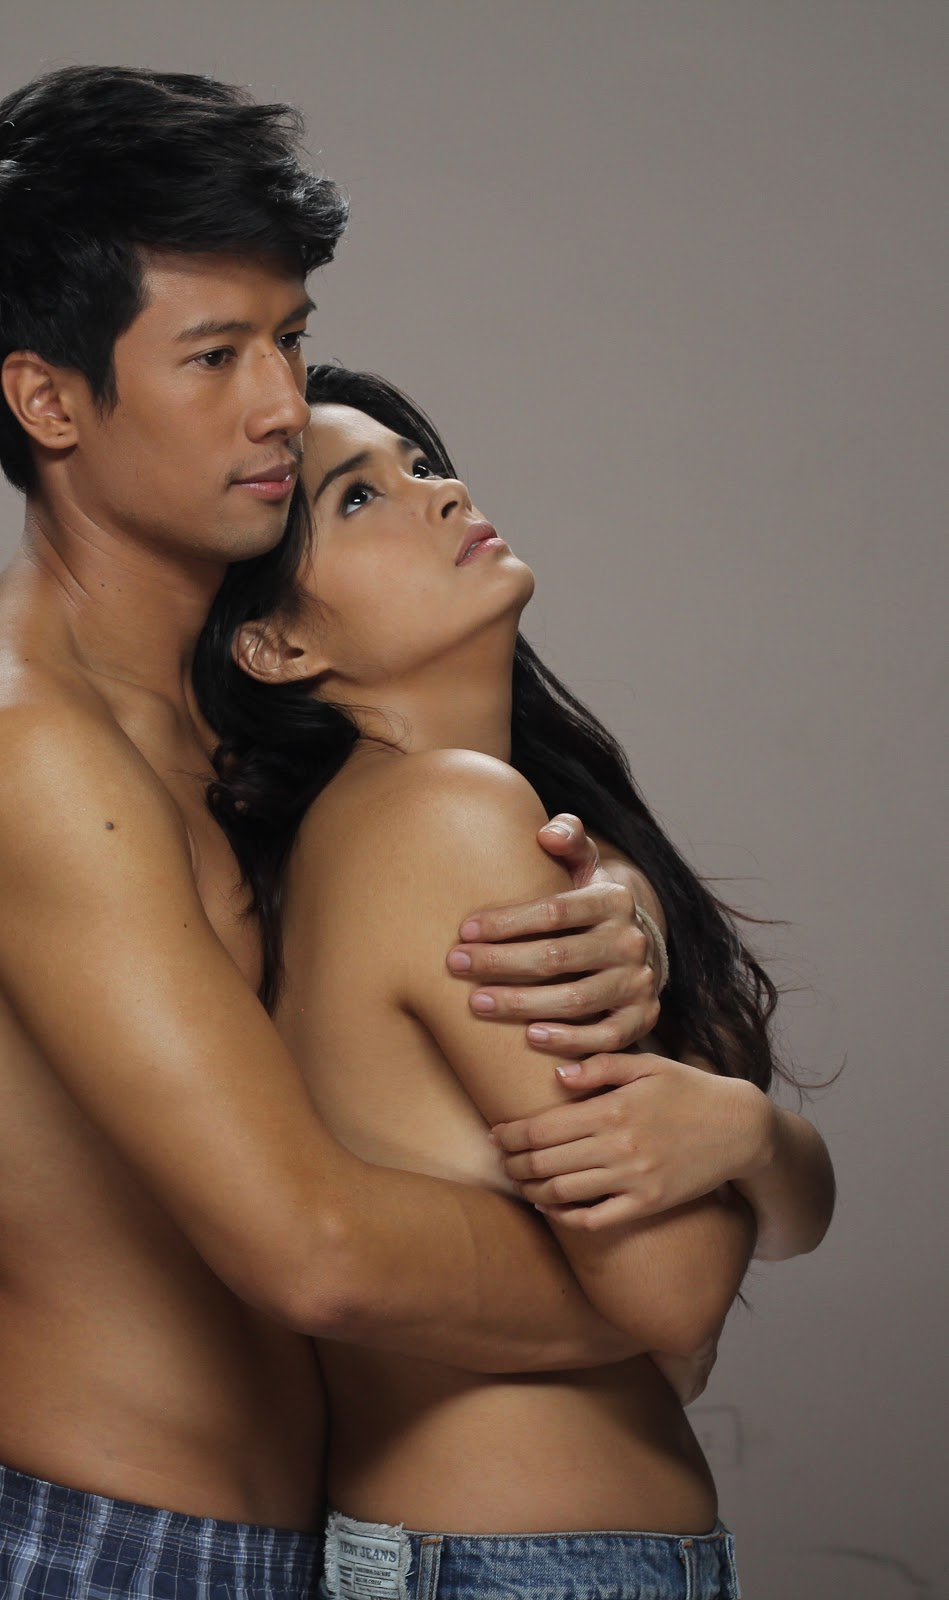 yam concepcion and john james uy pictures filed under photo gallery by